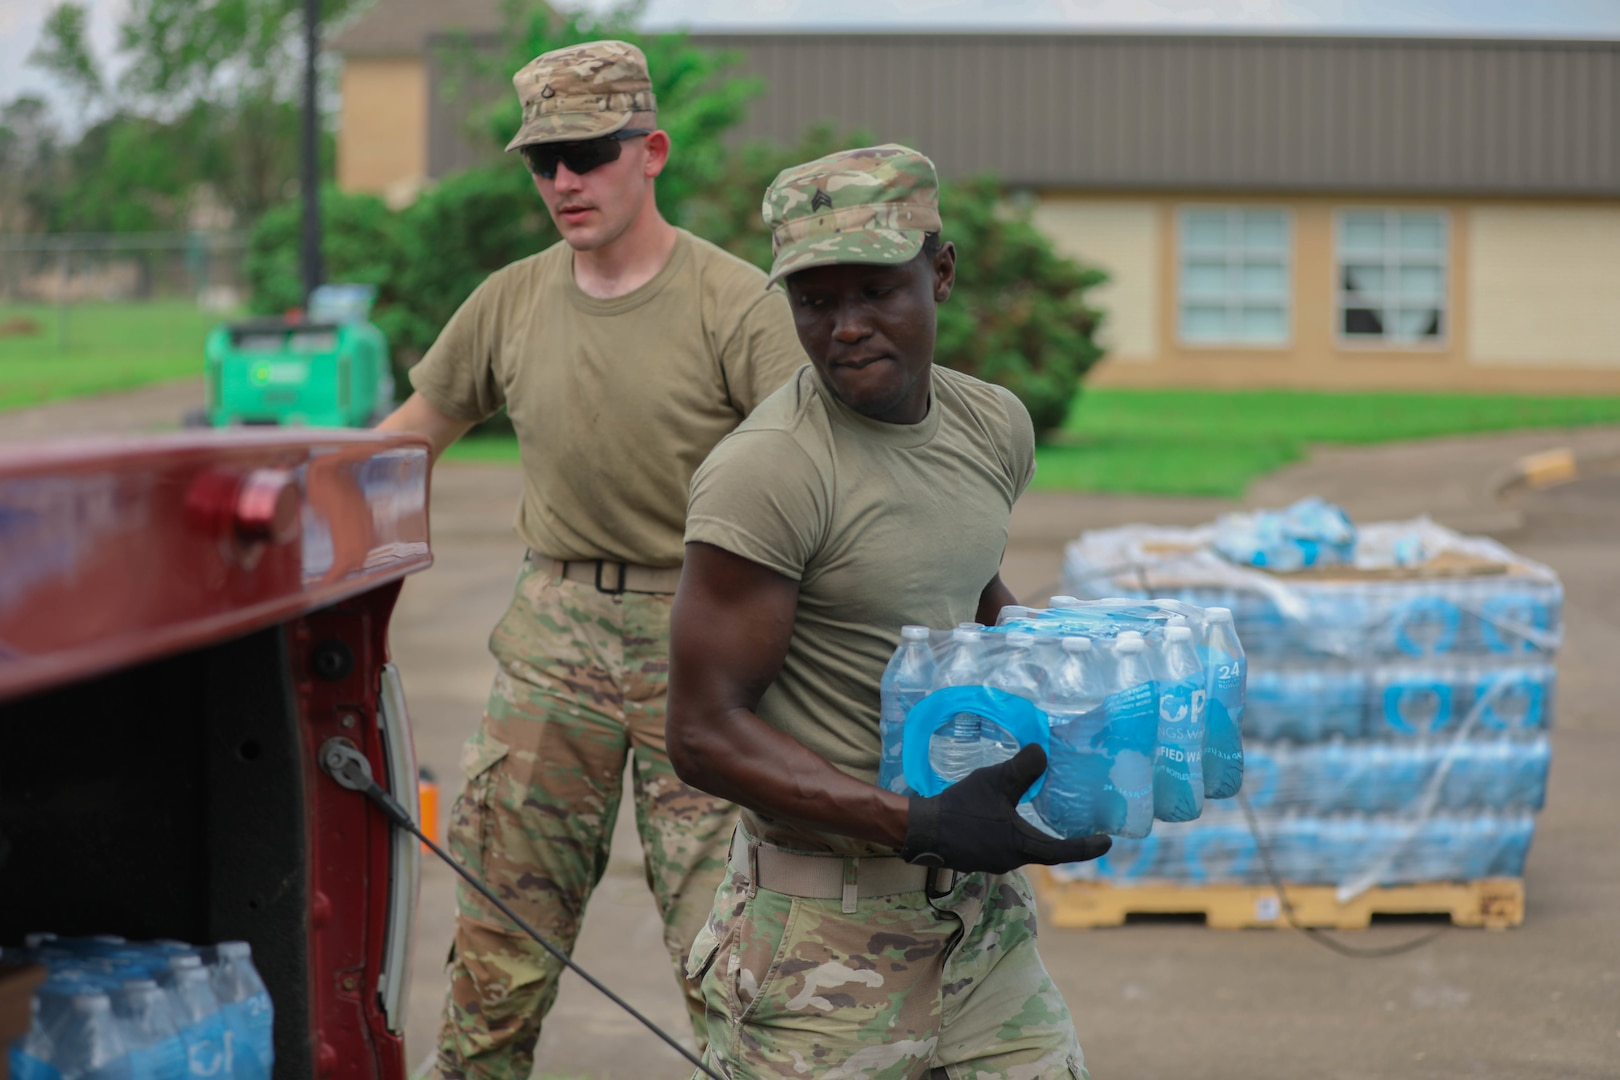 Sgt. Stephen Bruke, a Mustang, Oklahoma resident and Oklahoma Army National Guard, hands out water at a point of distribution site in Gramercy, Louisiana, Sept. 4. . The Oklahoma National Guard operates 13 PODs across seven parishes that supply local families with tarps, meals ready to eat, ice and water. (Oklahoma National Guard photo by Cpl. Reece Heck)